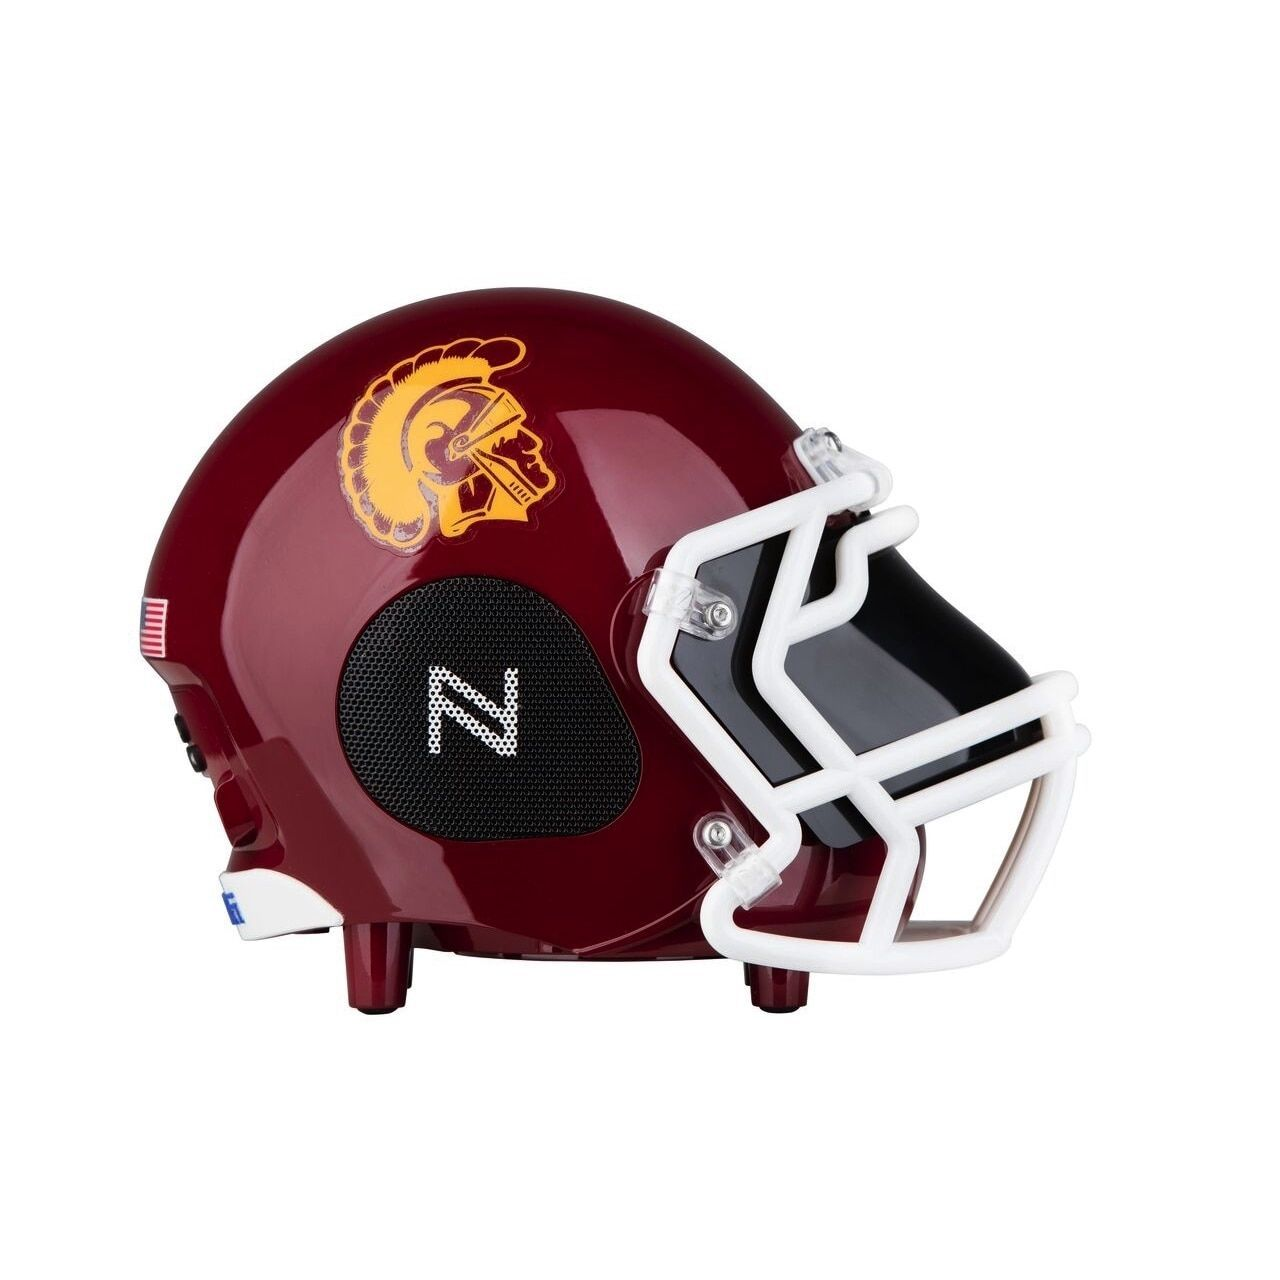 Usa nimas usc football helmet official ncaa licensed medium sized usa nimas usc football helmet official ncaa licensed medium sized bluetooth speaker bankloansurffo Choice Image